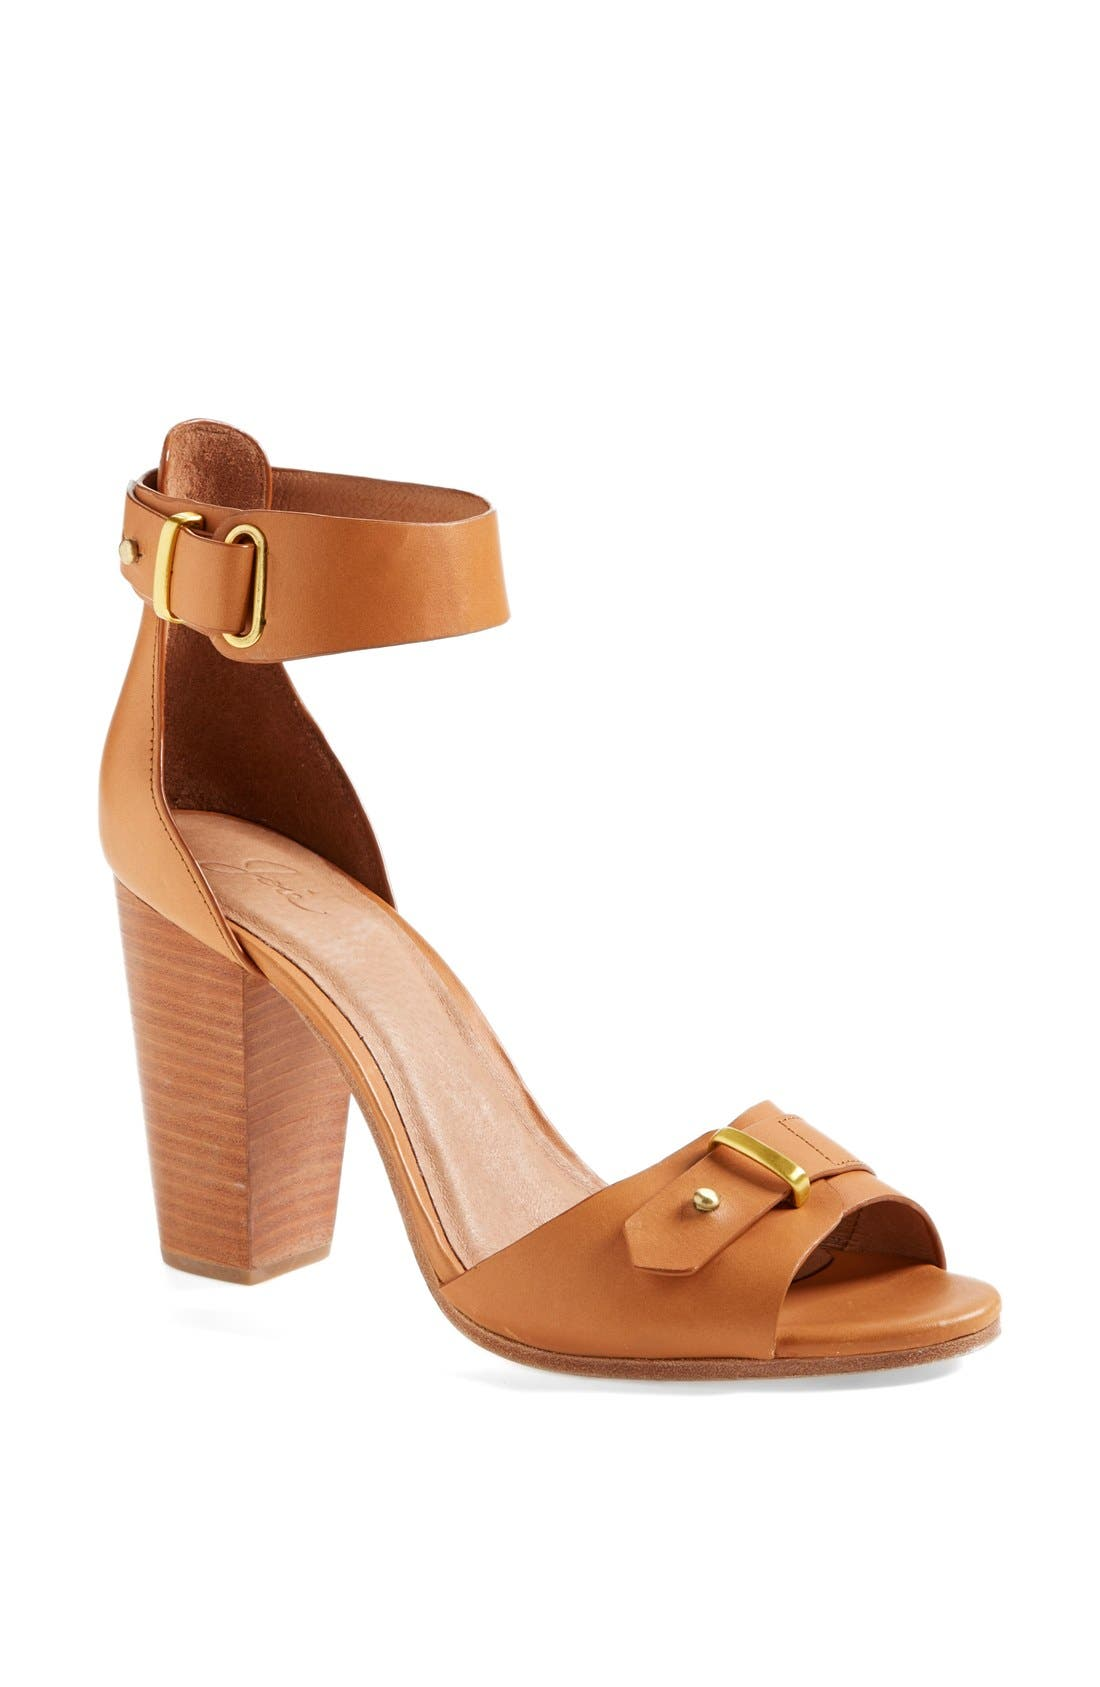 Alternate Image 1 Selected - Joie Ankle Strap Sandal